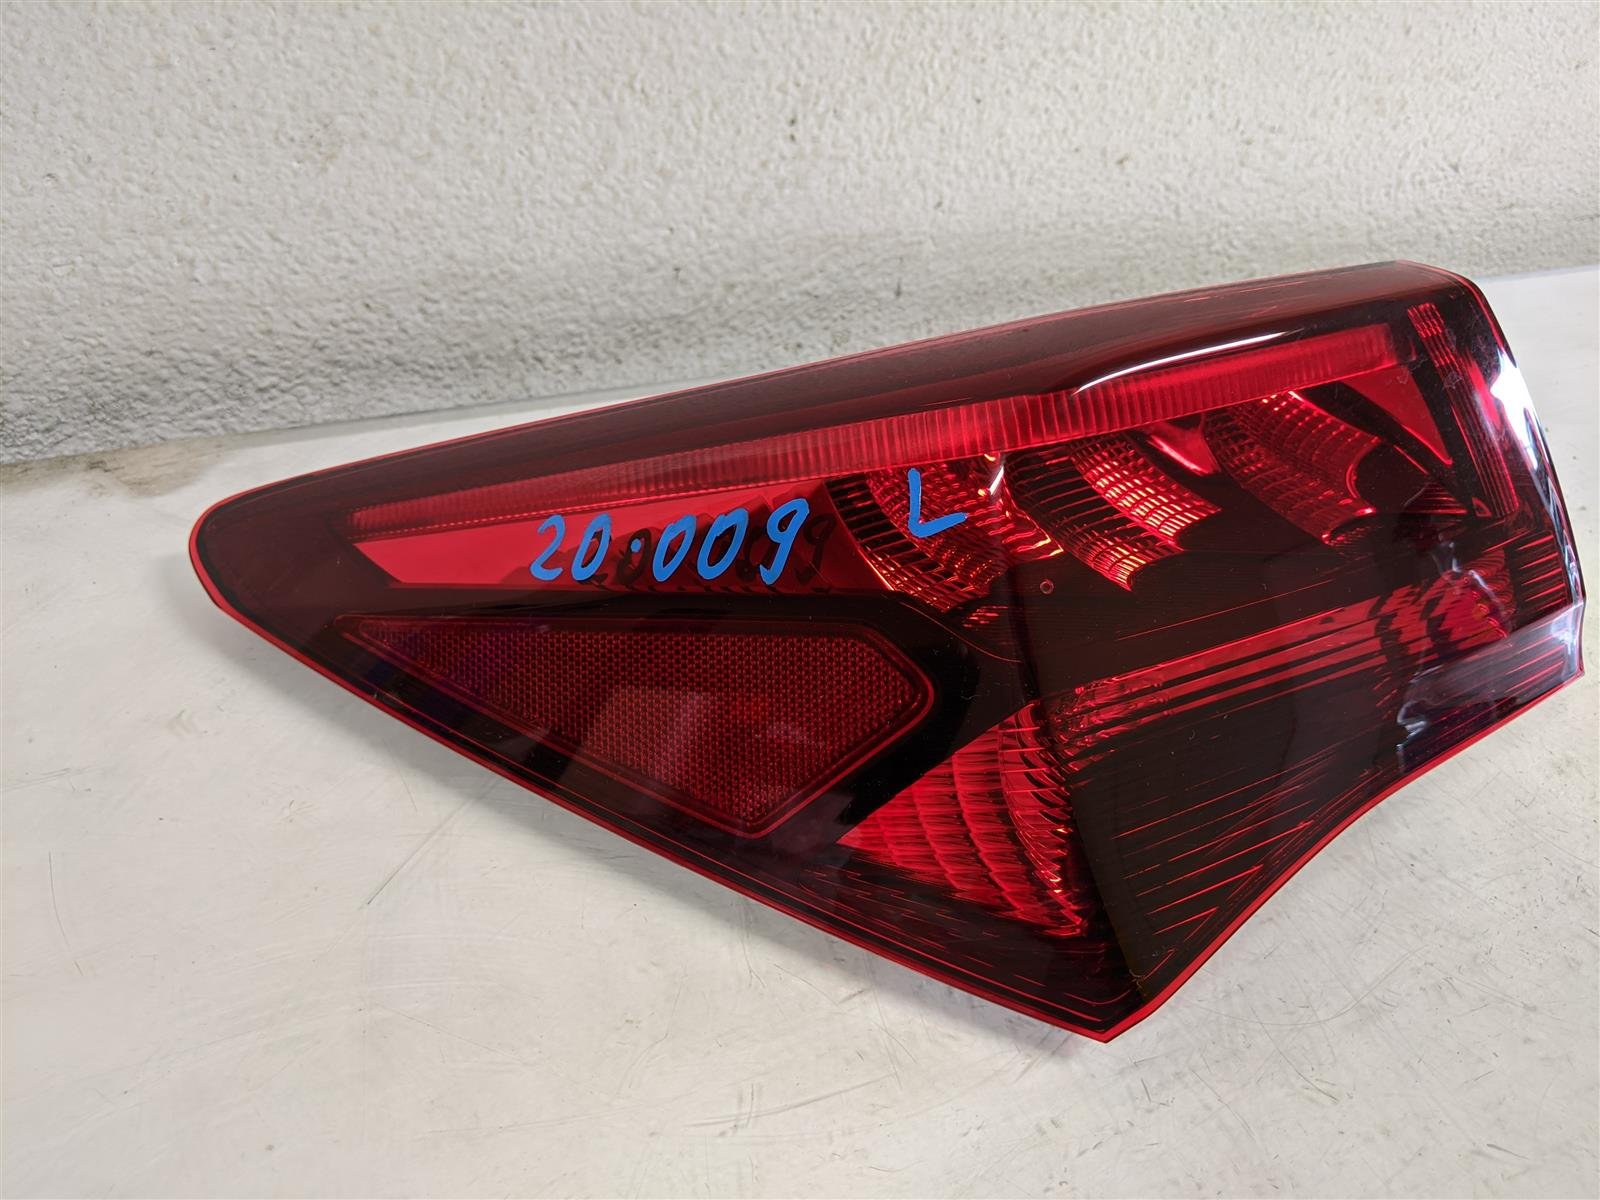 2017 Acura TLX Driver Tail Light Lamp Replacement